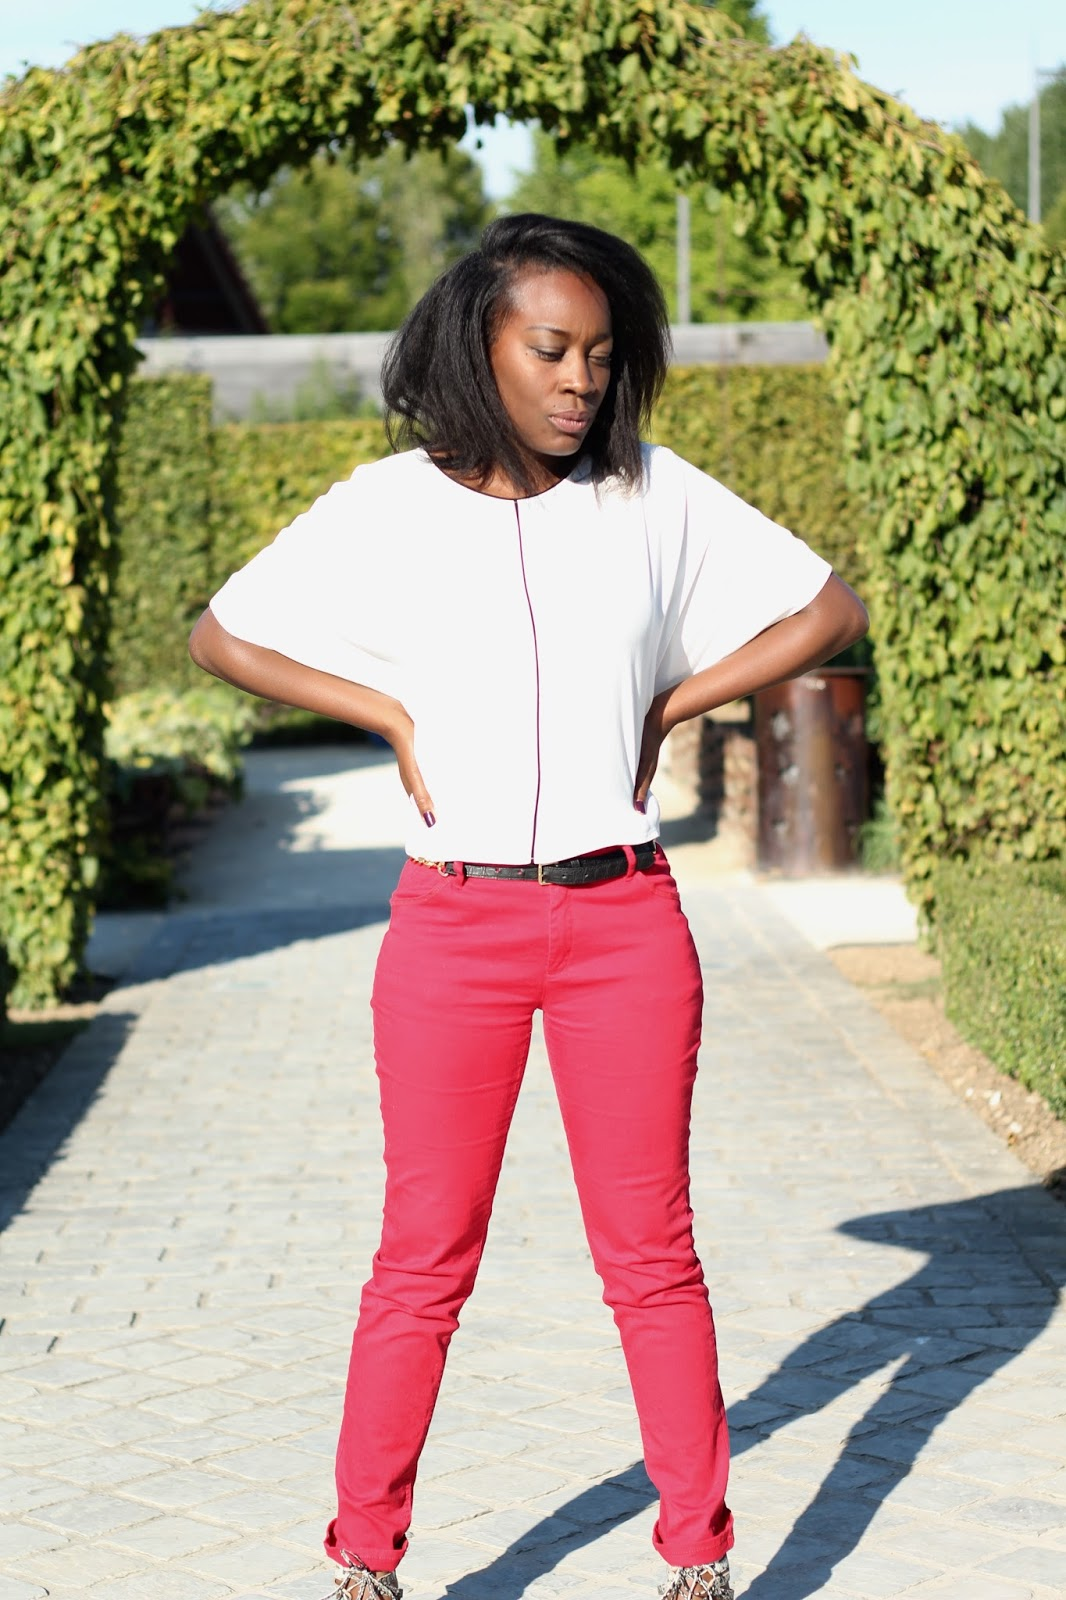 BLOG MODE ET TENDANCE-FASHION BLOGGER-STRAIGHT HAIR